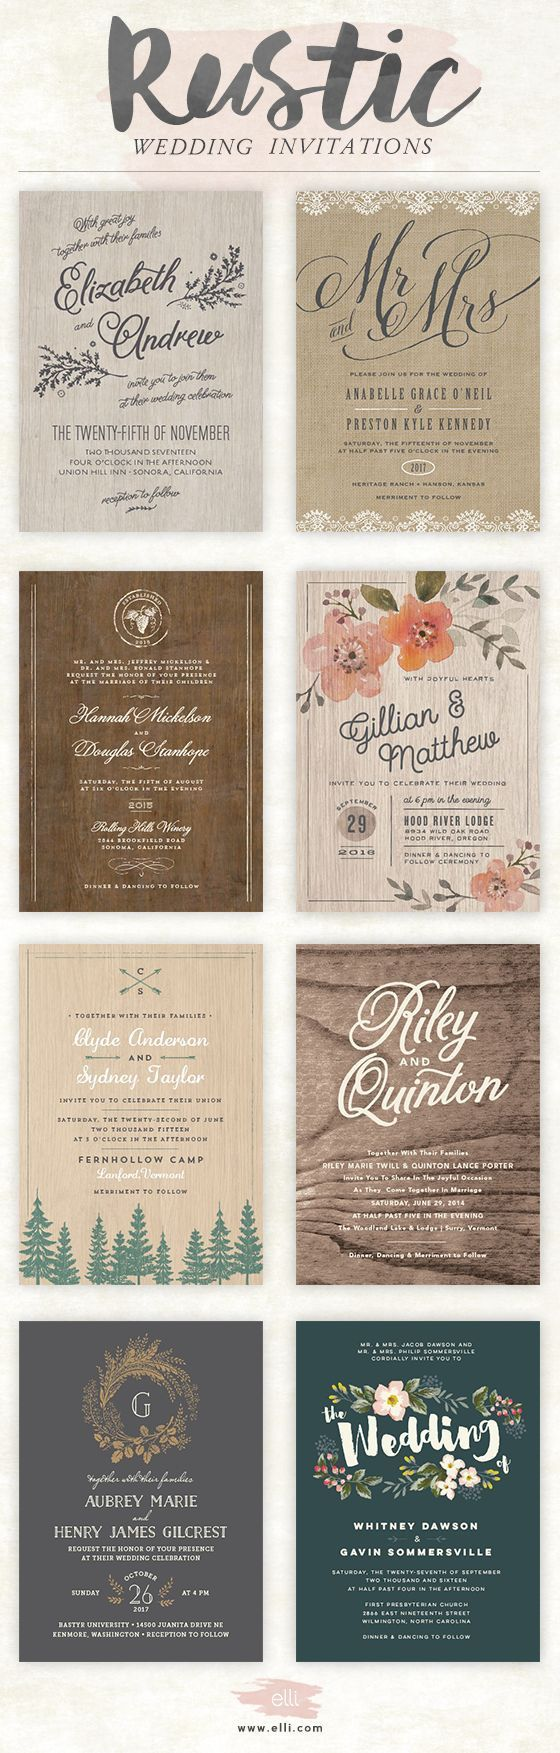 how to address wedding invites%0A Rustic wedding invitations    Bella Collina Weddings